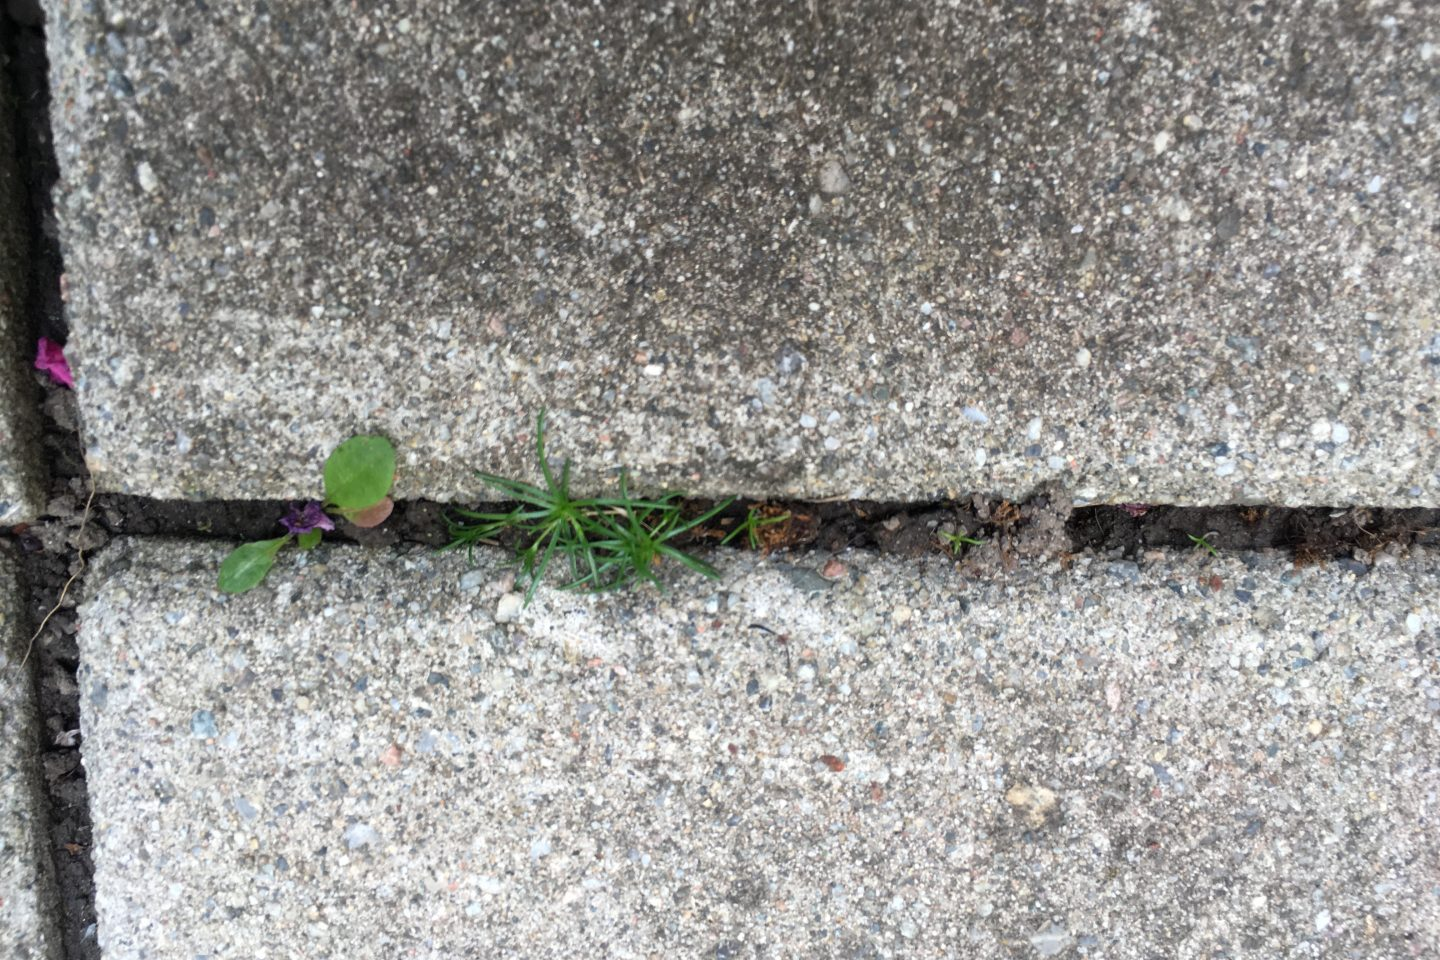 How to stop weeds from growing between pavers?